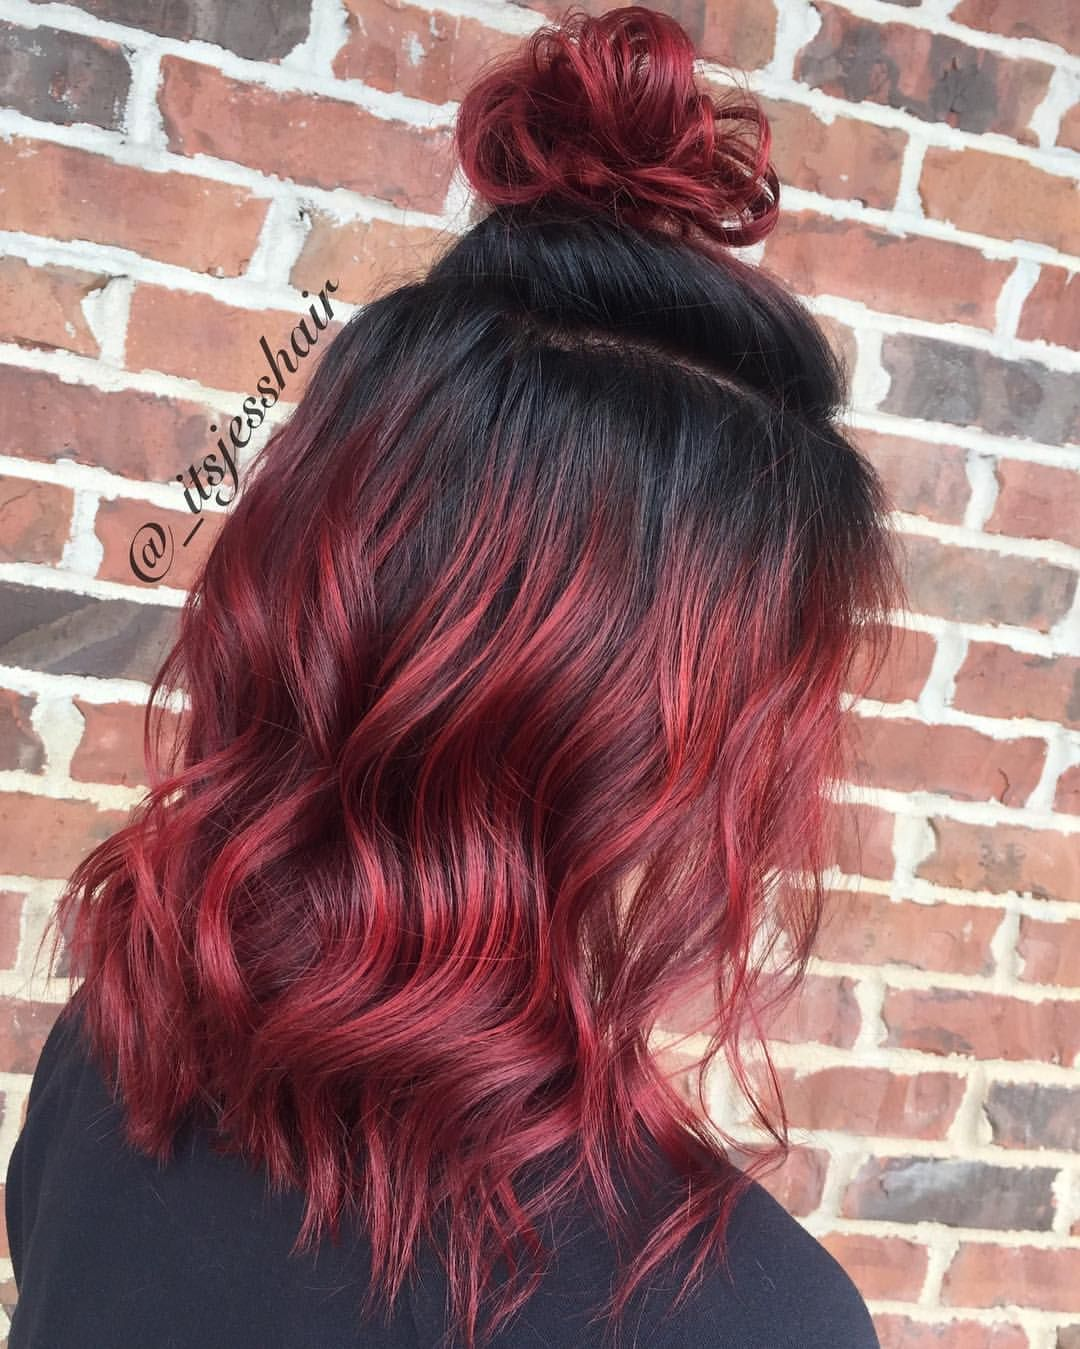 Pin By Jessica Knott On ️beautician ️ In 2019 Red Ombre